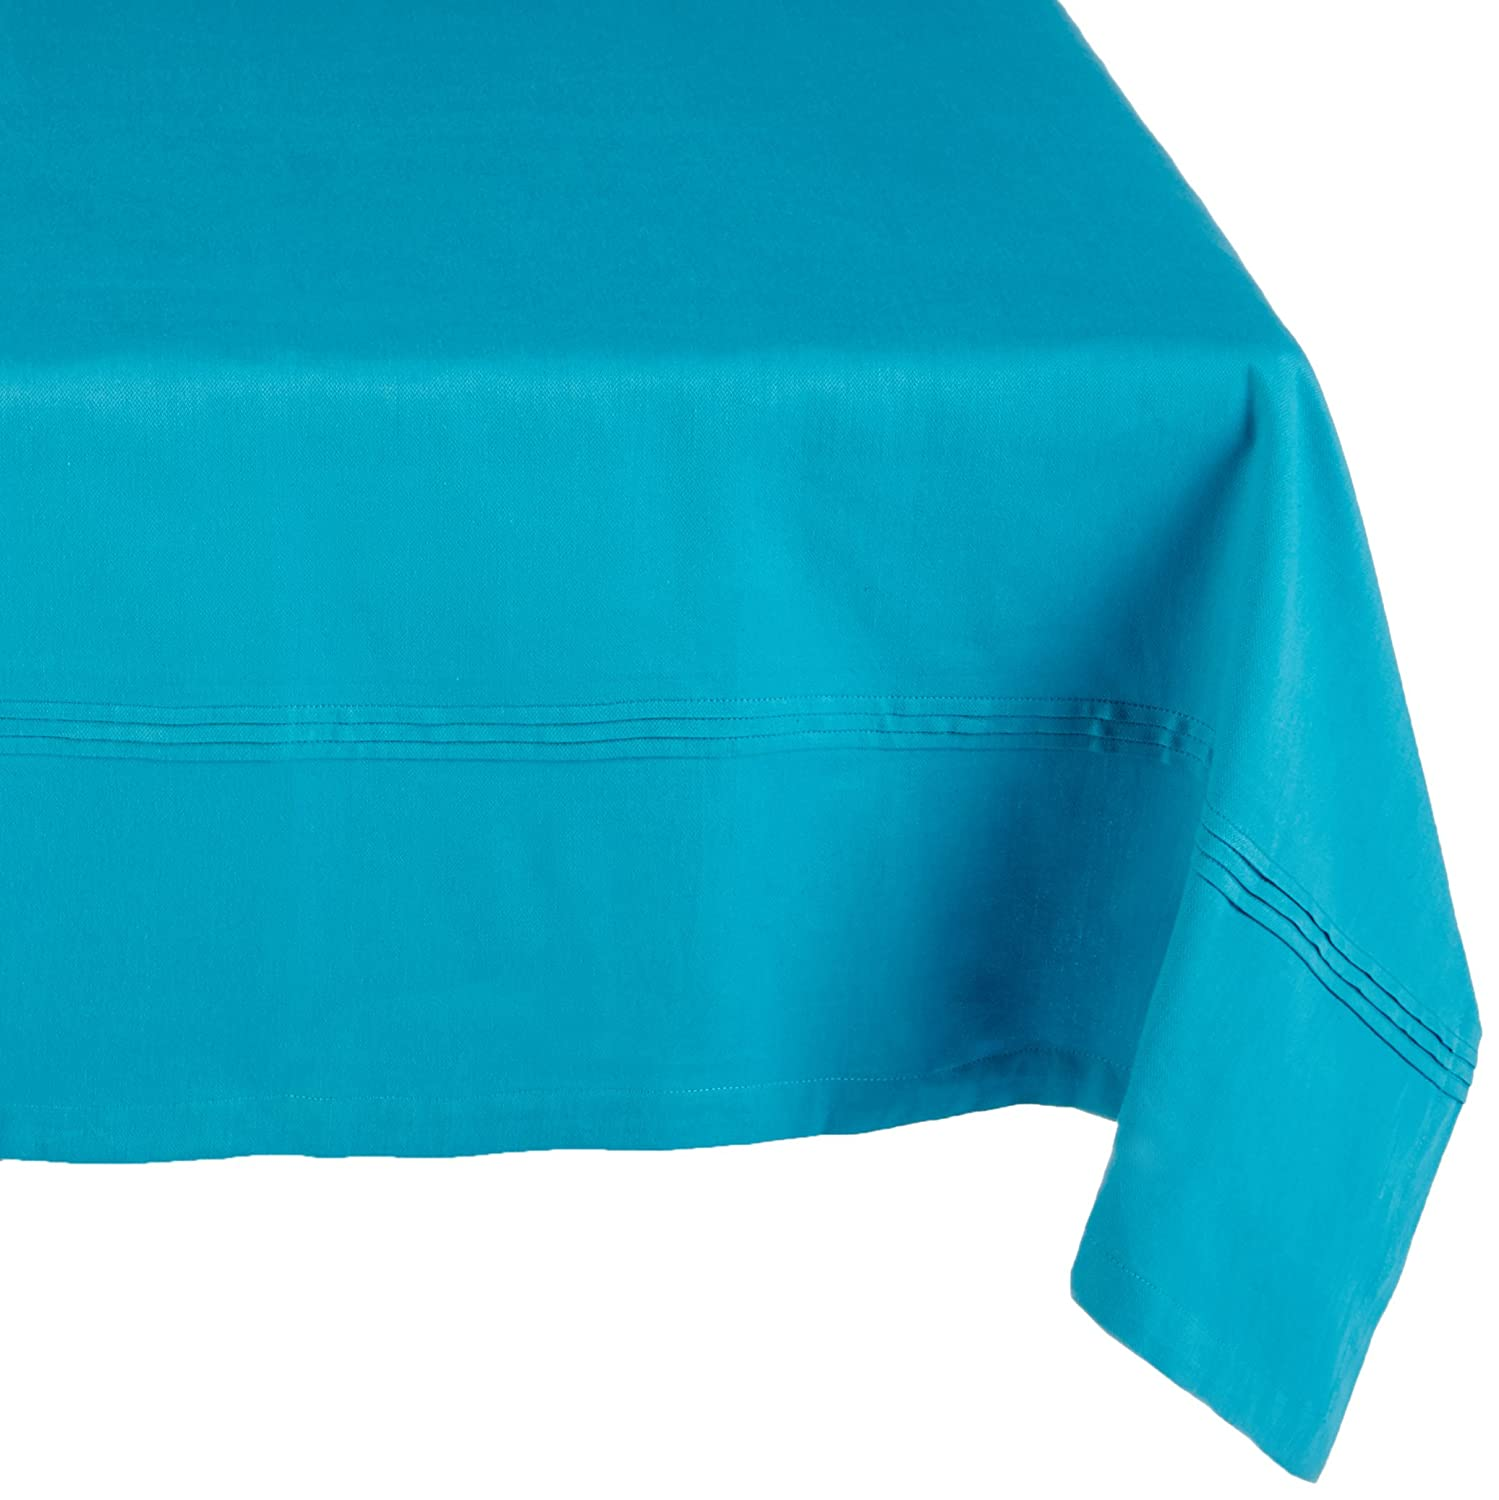 Ladelle 42189 59 x 90-1//2 Pintuck Blue Tablecloth Small